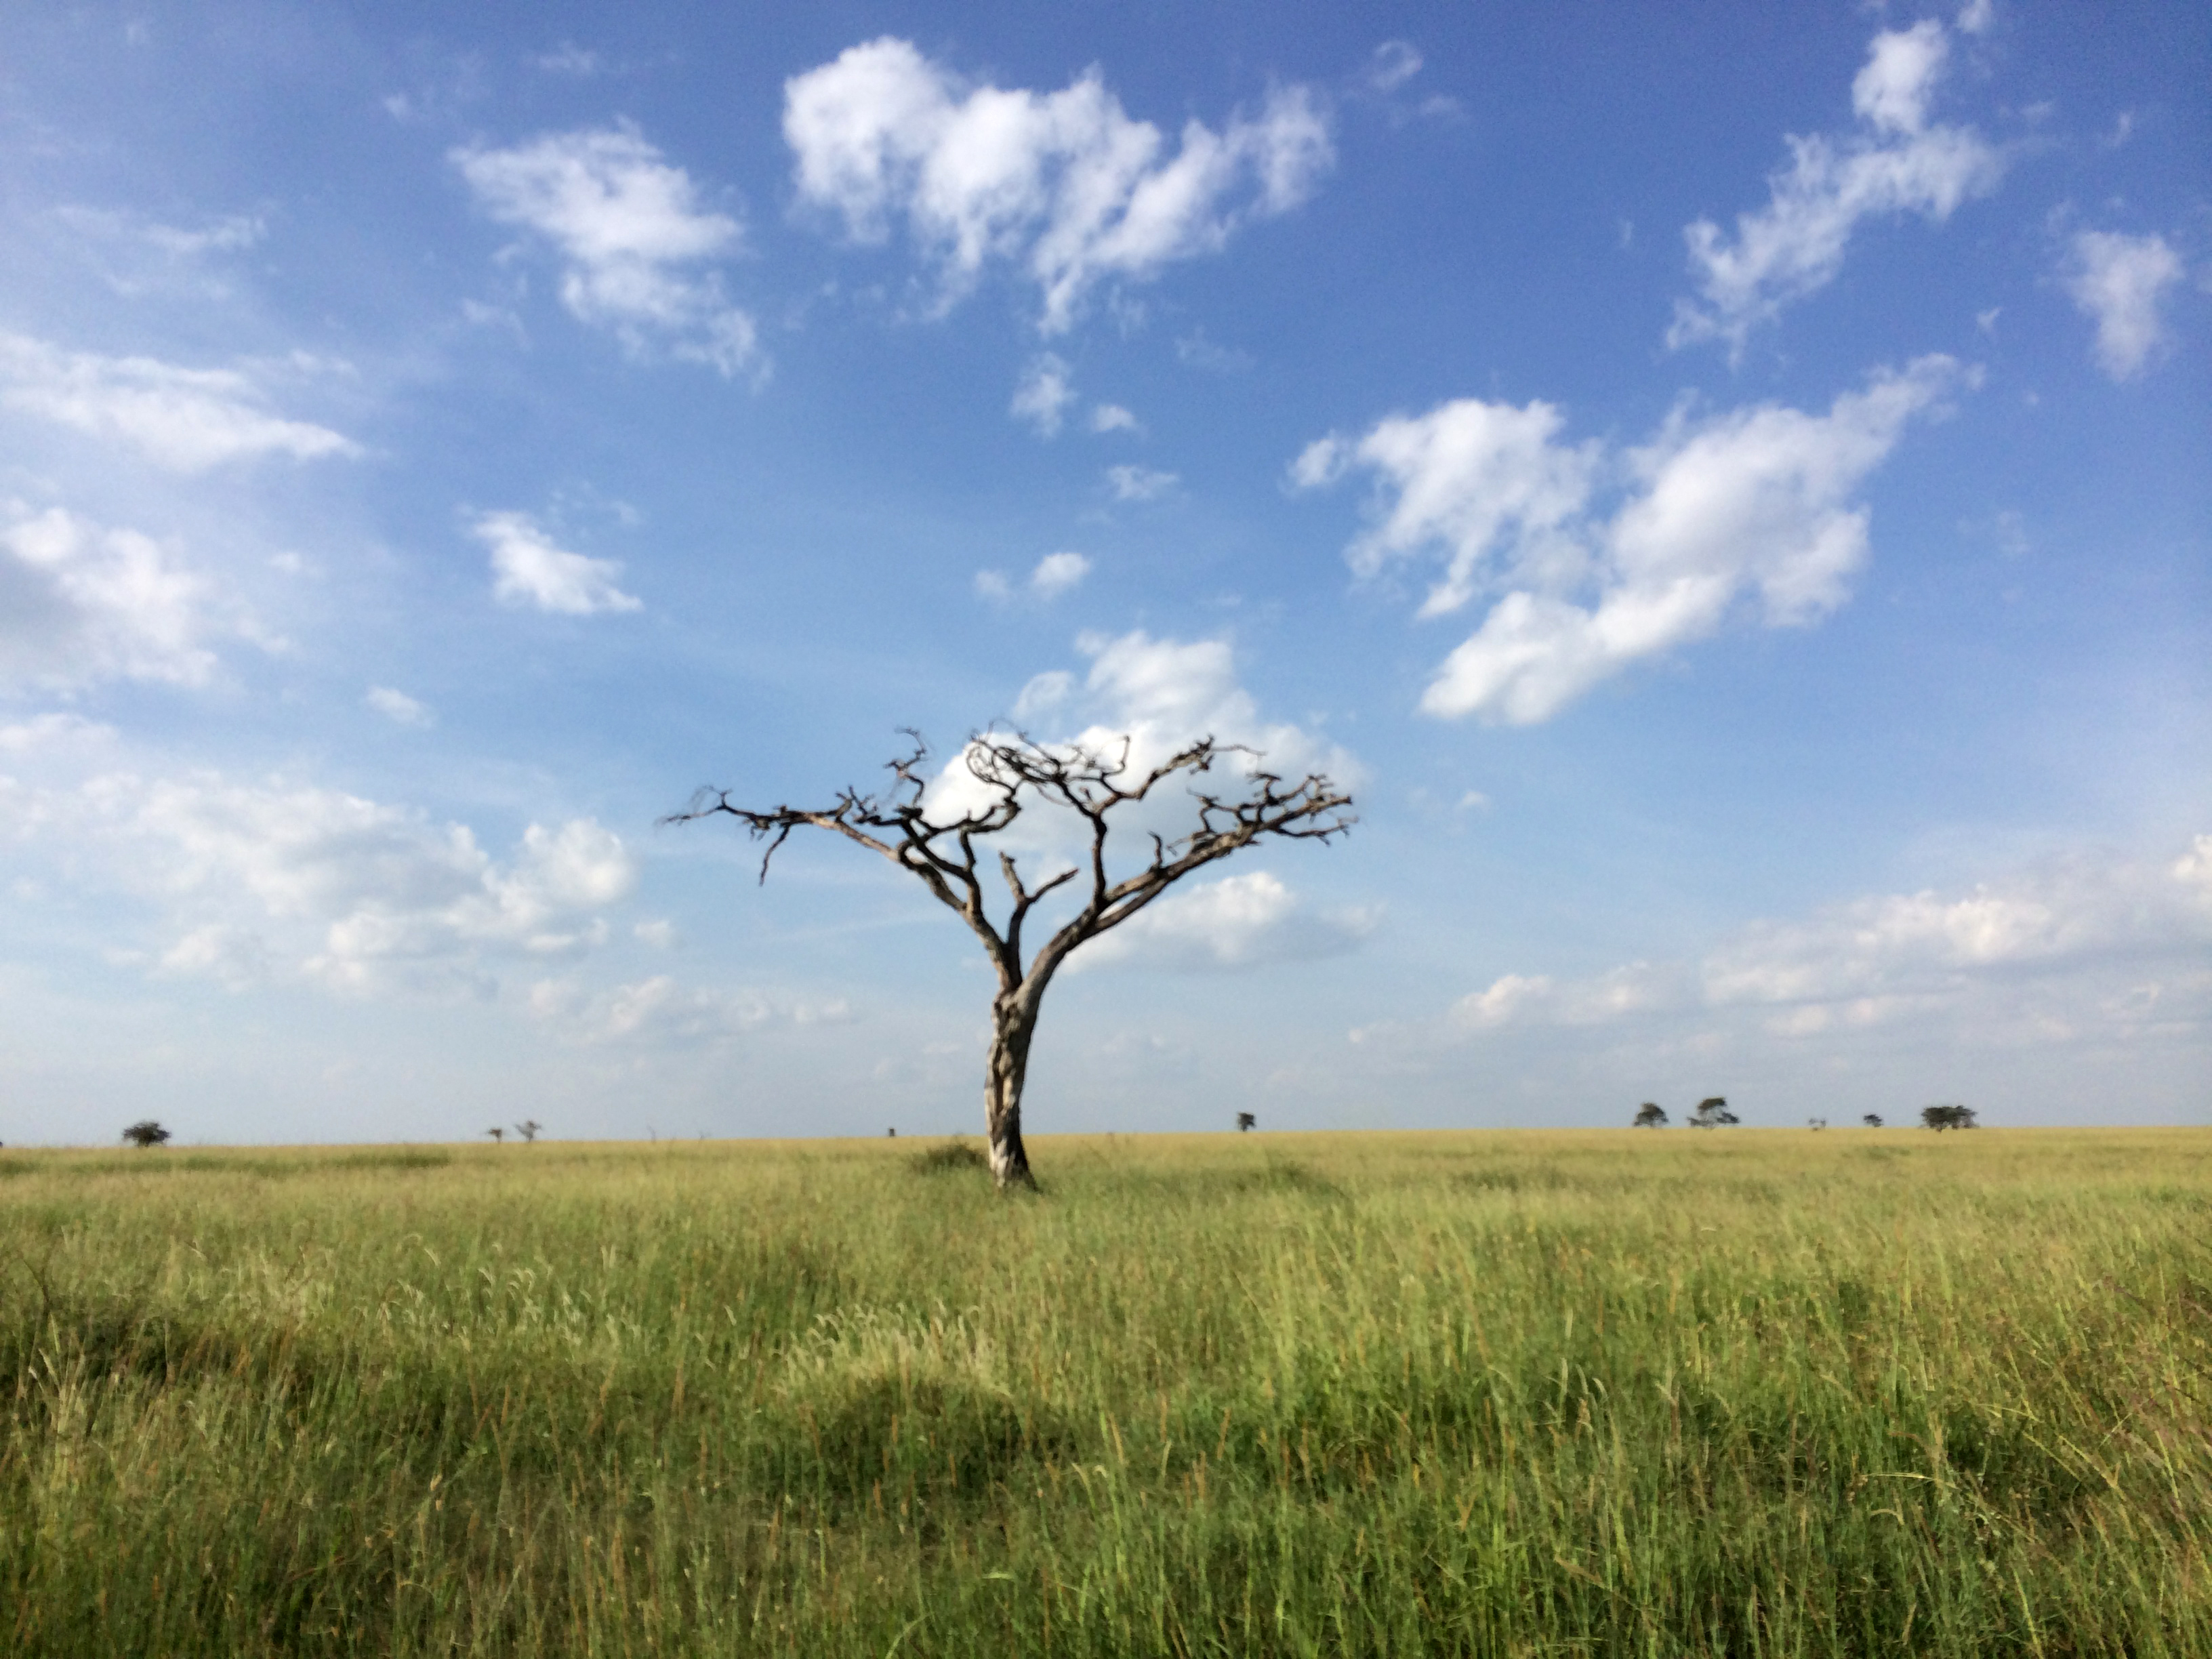 Serengeti National Park | Photo by Wilson Carletti (All Rights Reserved)